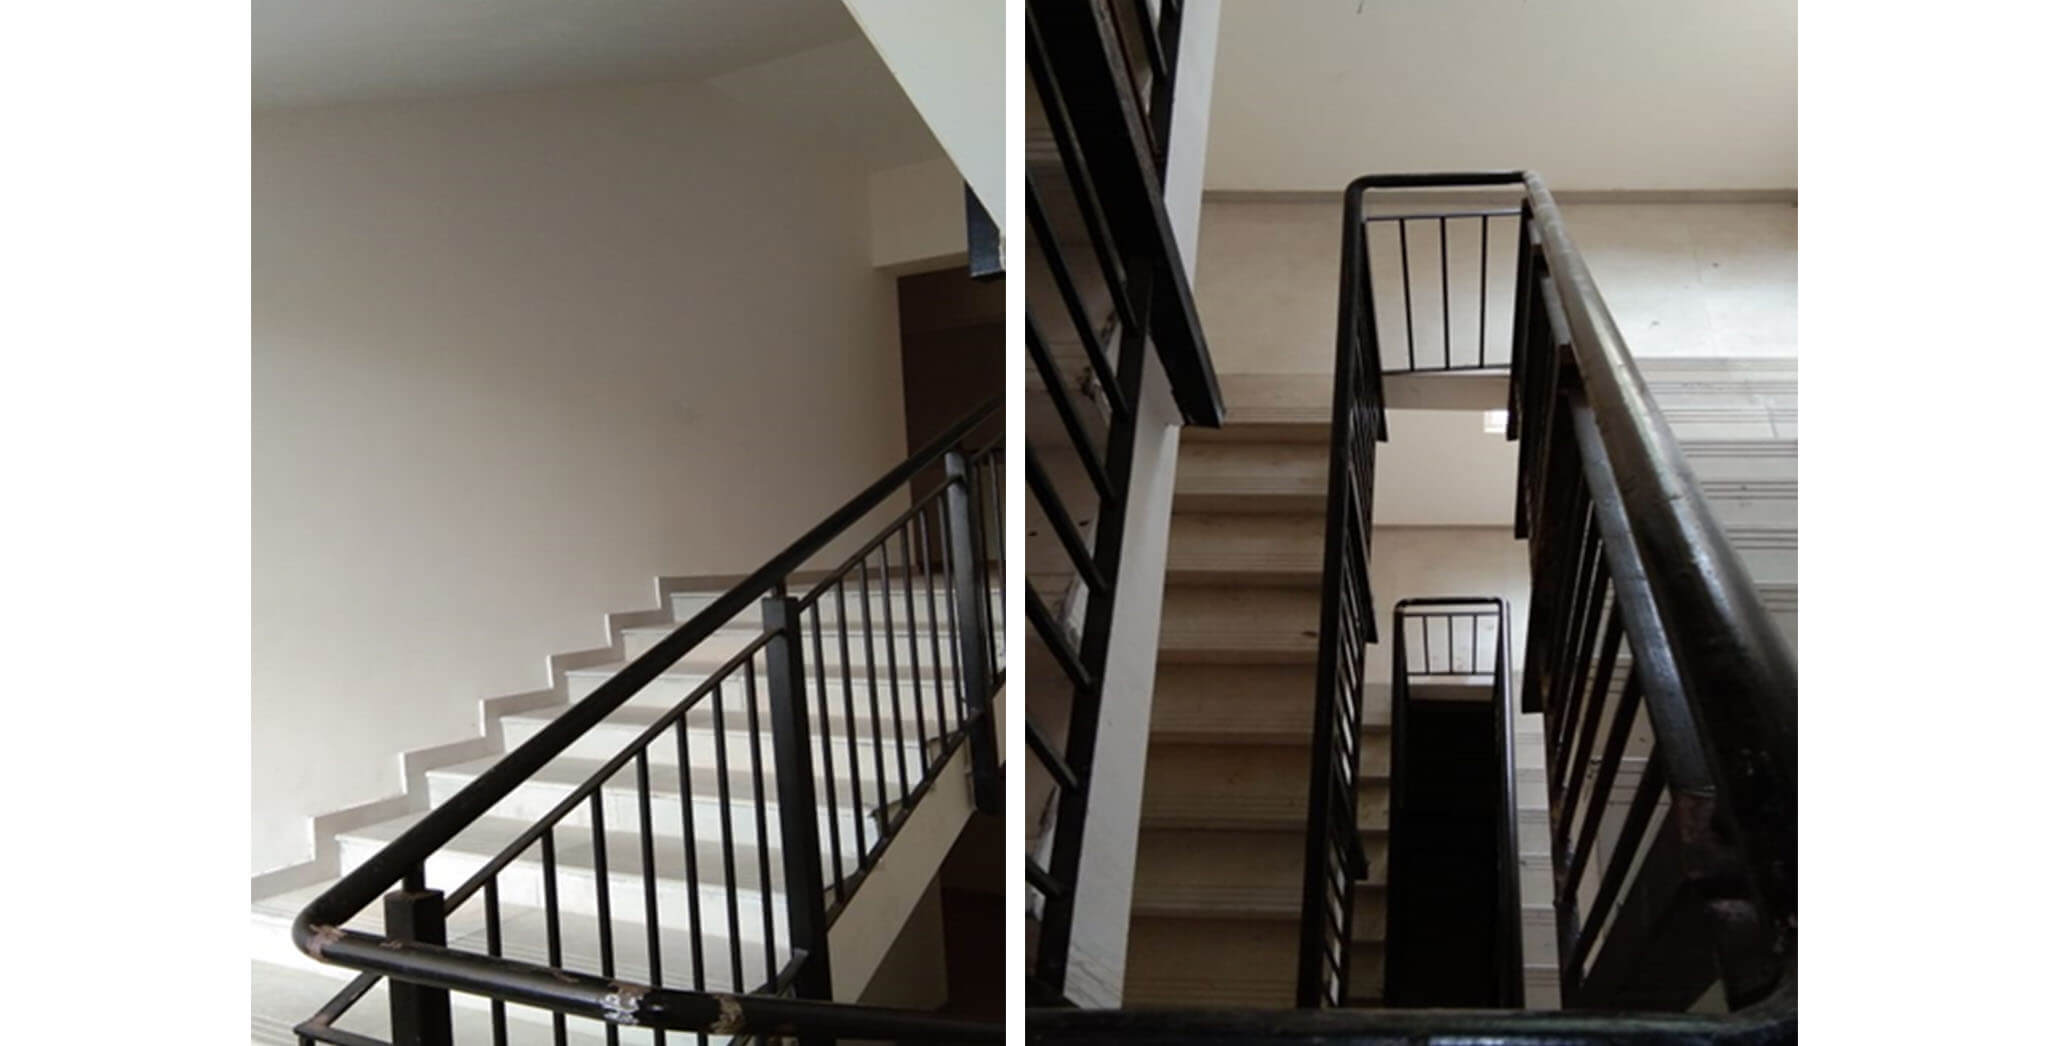 May 2020 - Deodar—G block: Staircase–Final coat painting for staircase railing in progress